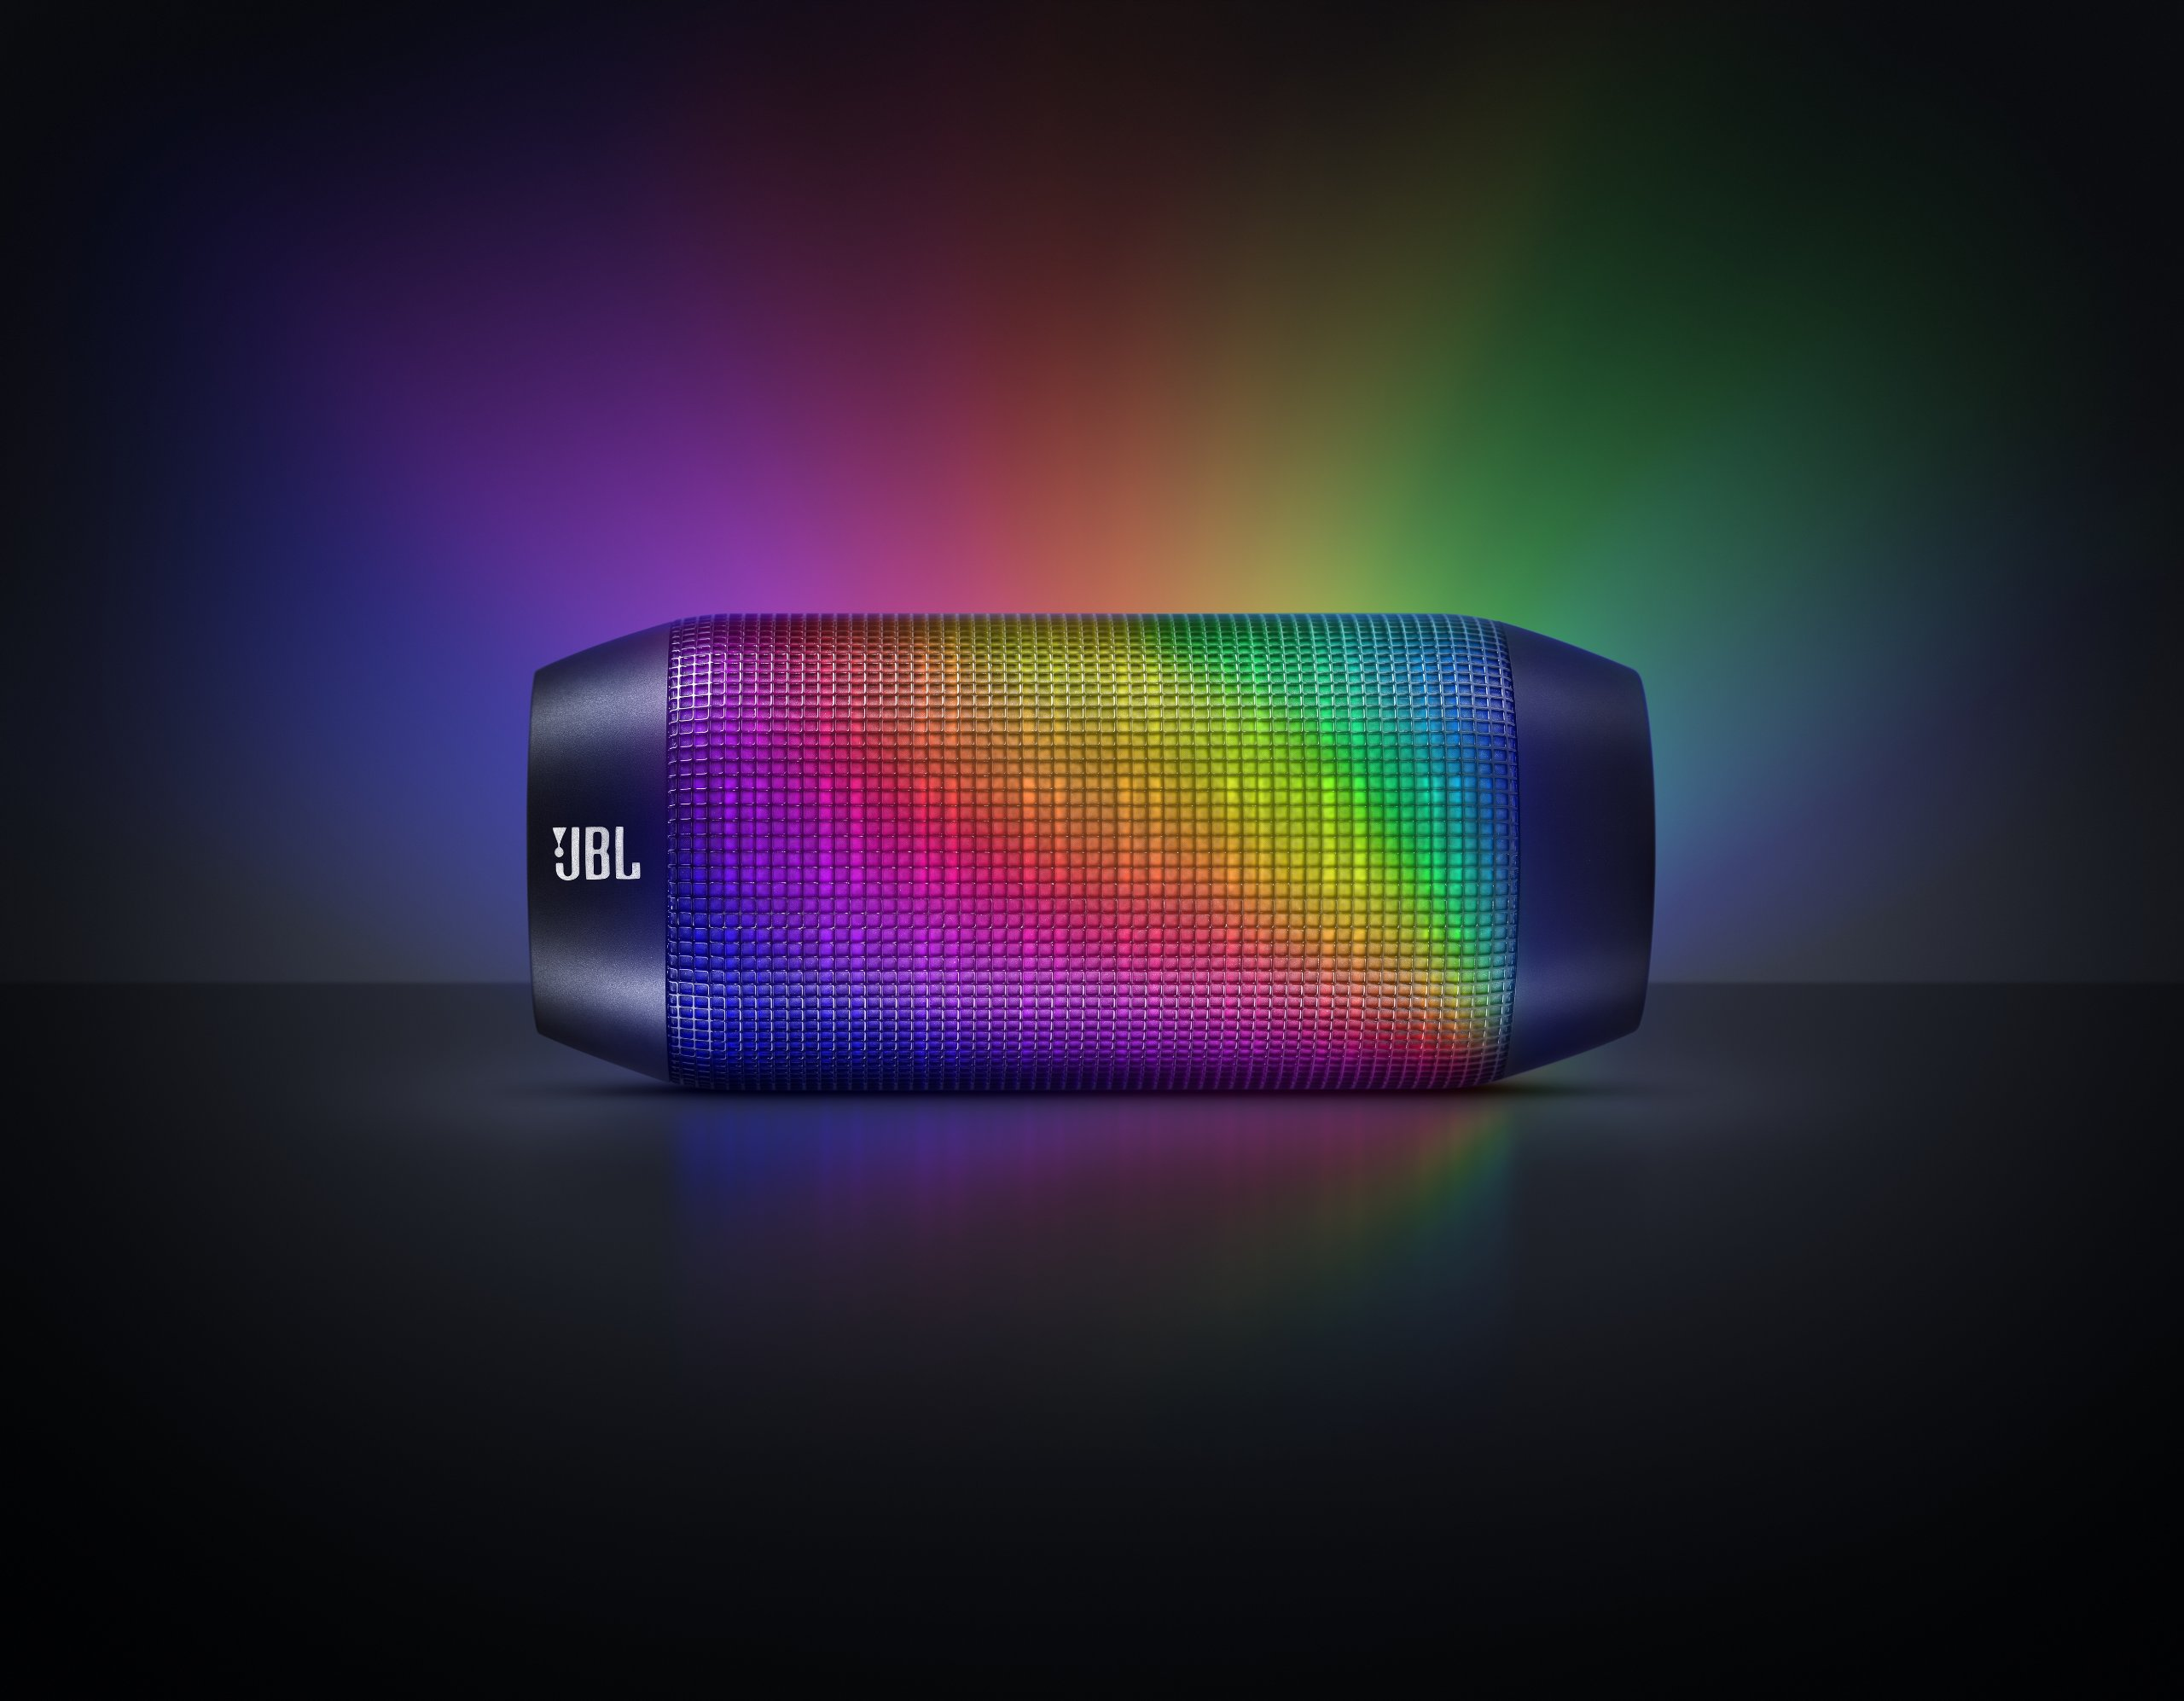 JBL Pulse Wireless Bluetooth Speaker with LED lights and NFC Pairing (Black) by JBL (Image #11)